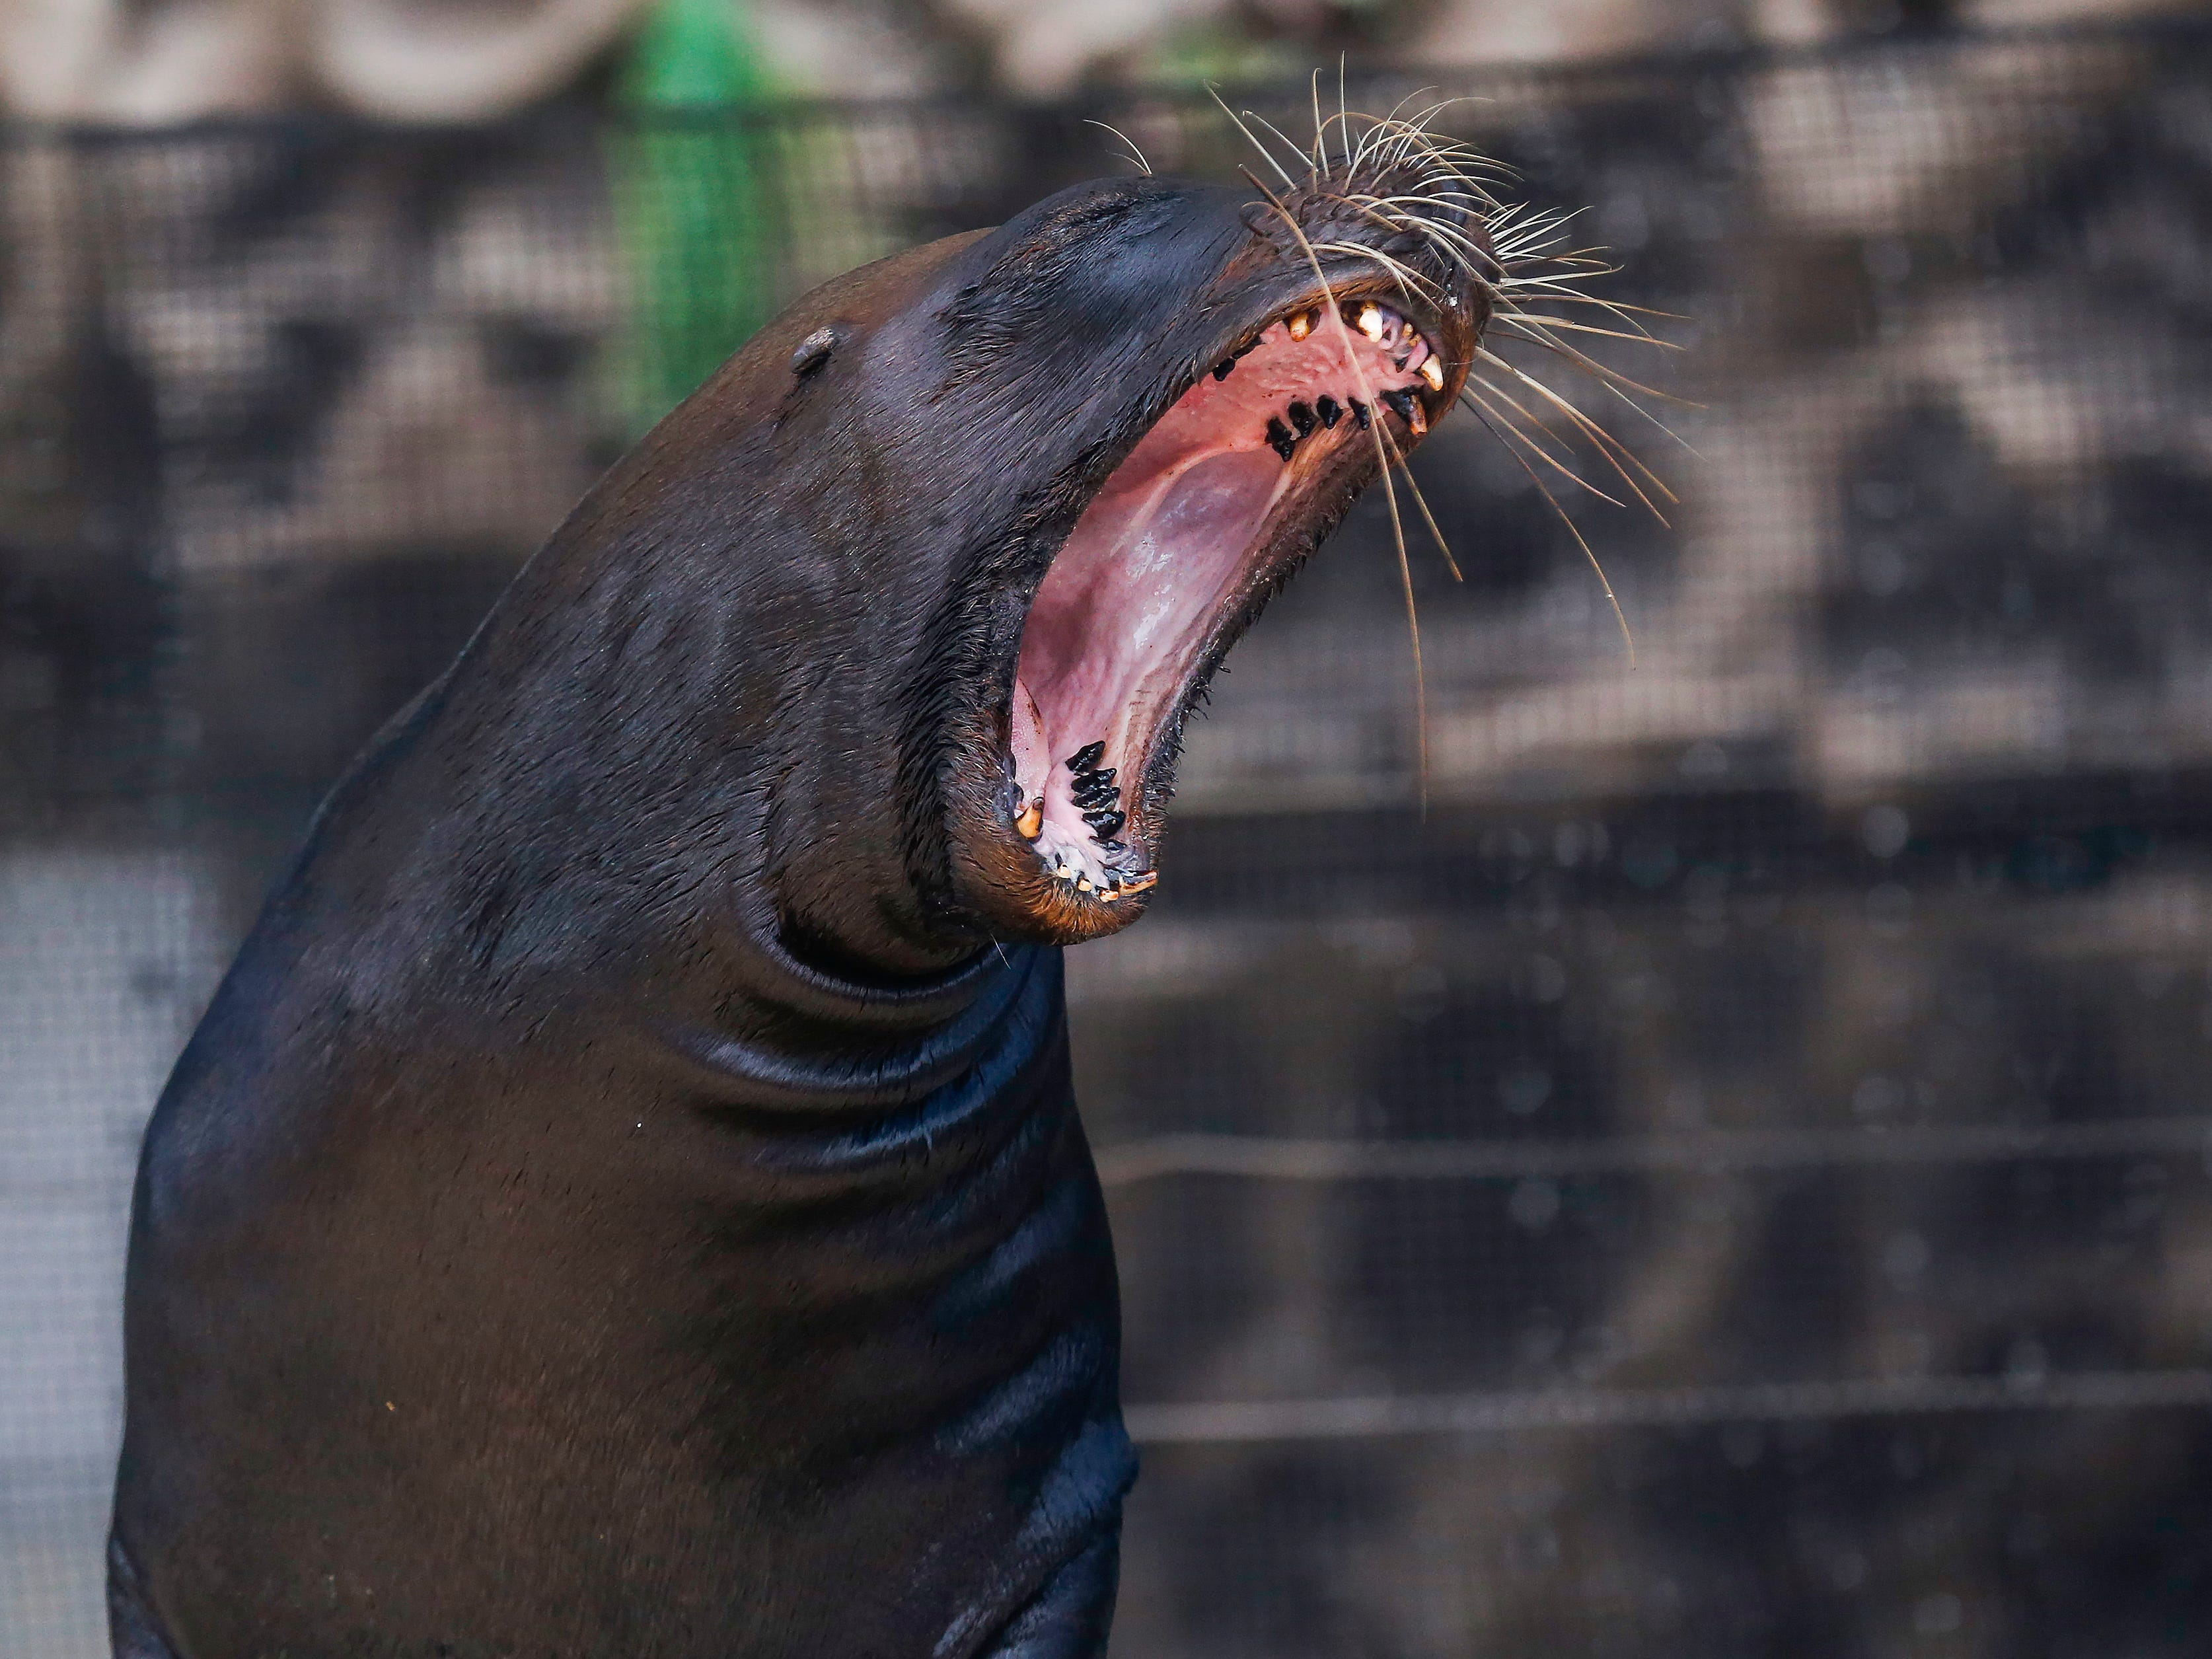 A sea lion yawns at the start of the Sea Lion Splash show at the Ozark Empire Fair on Saturday, July 28, 2018.